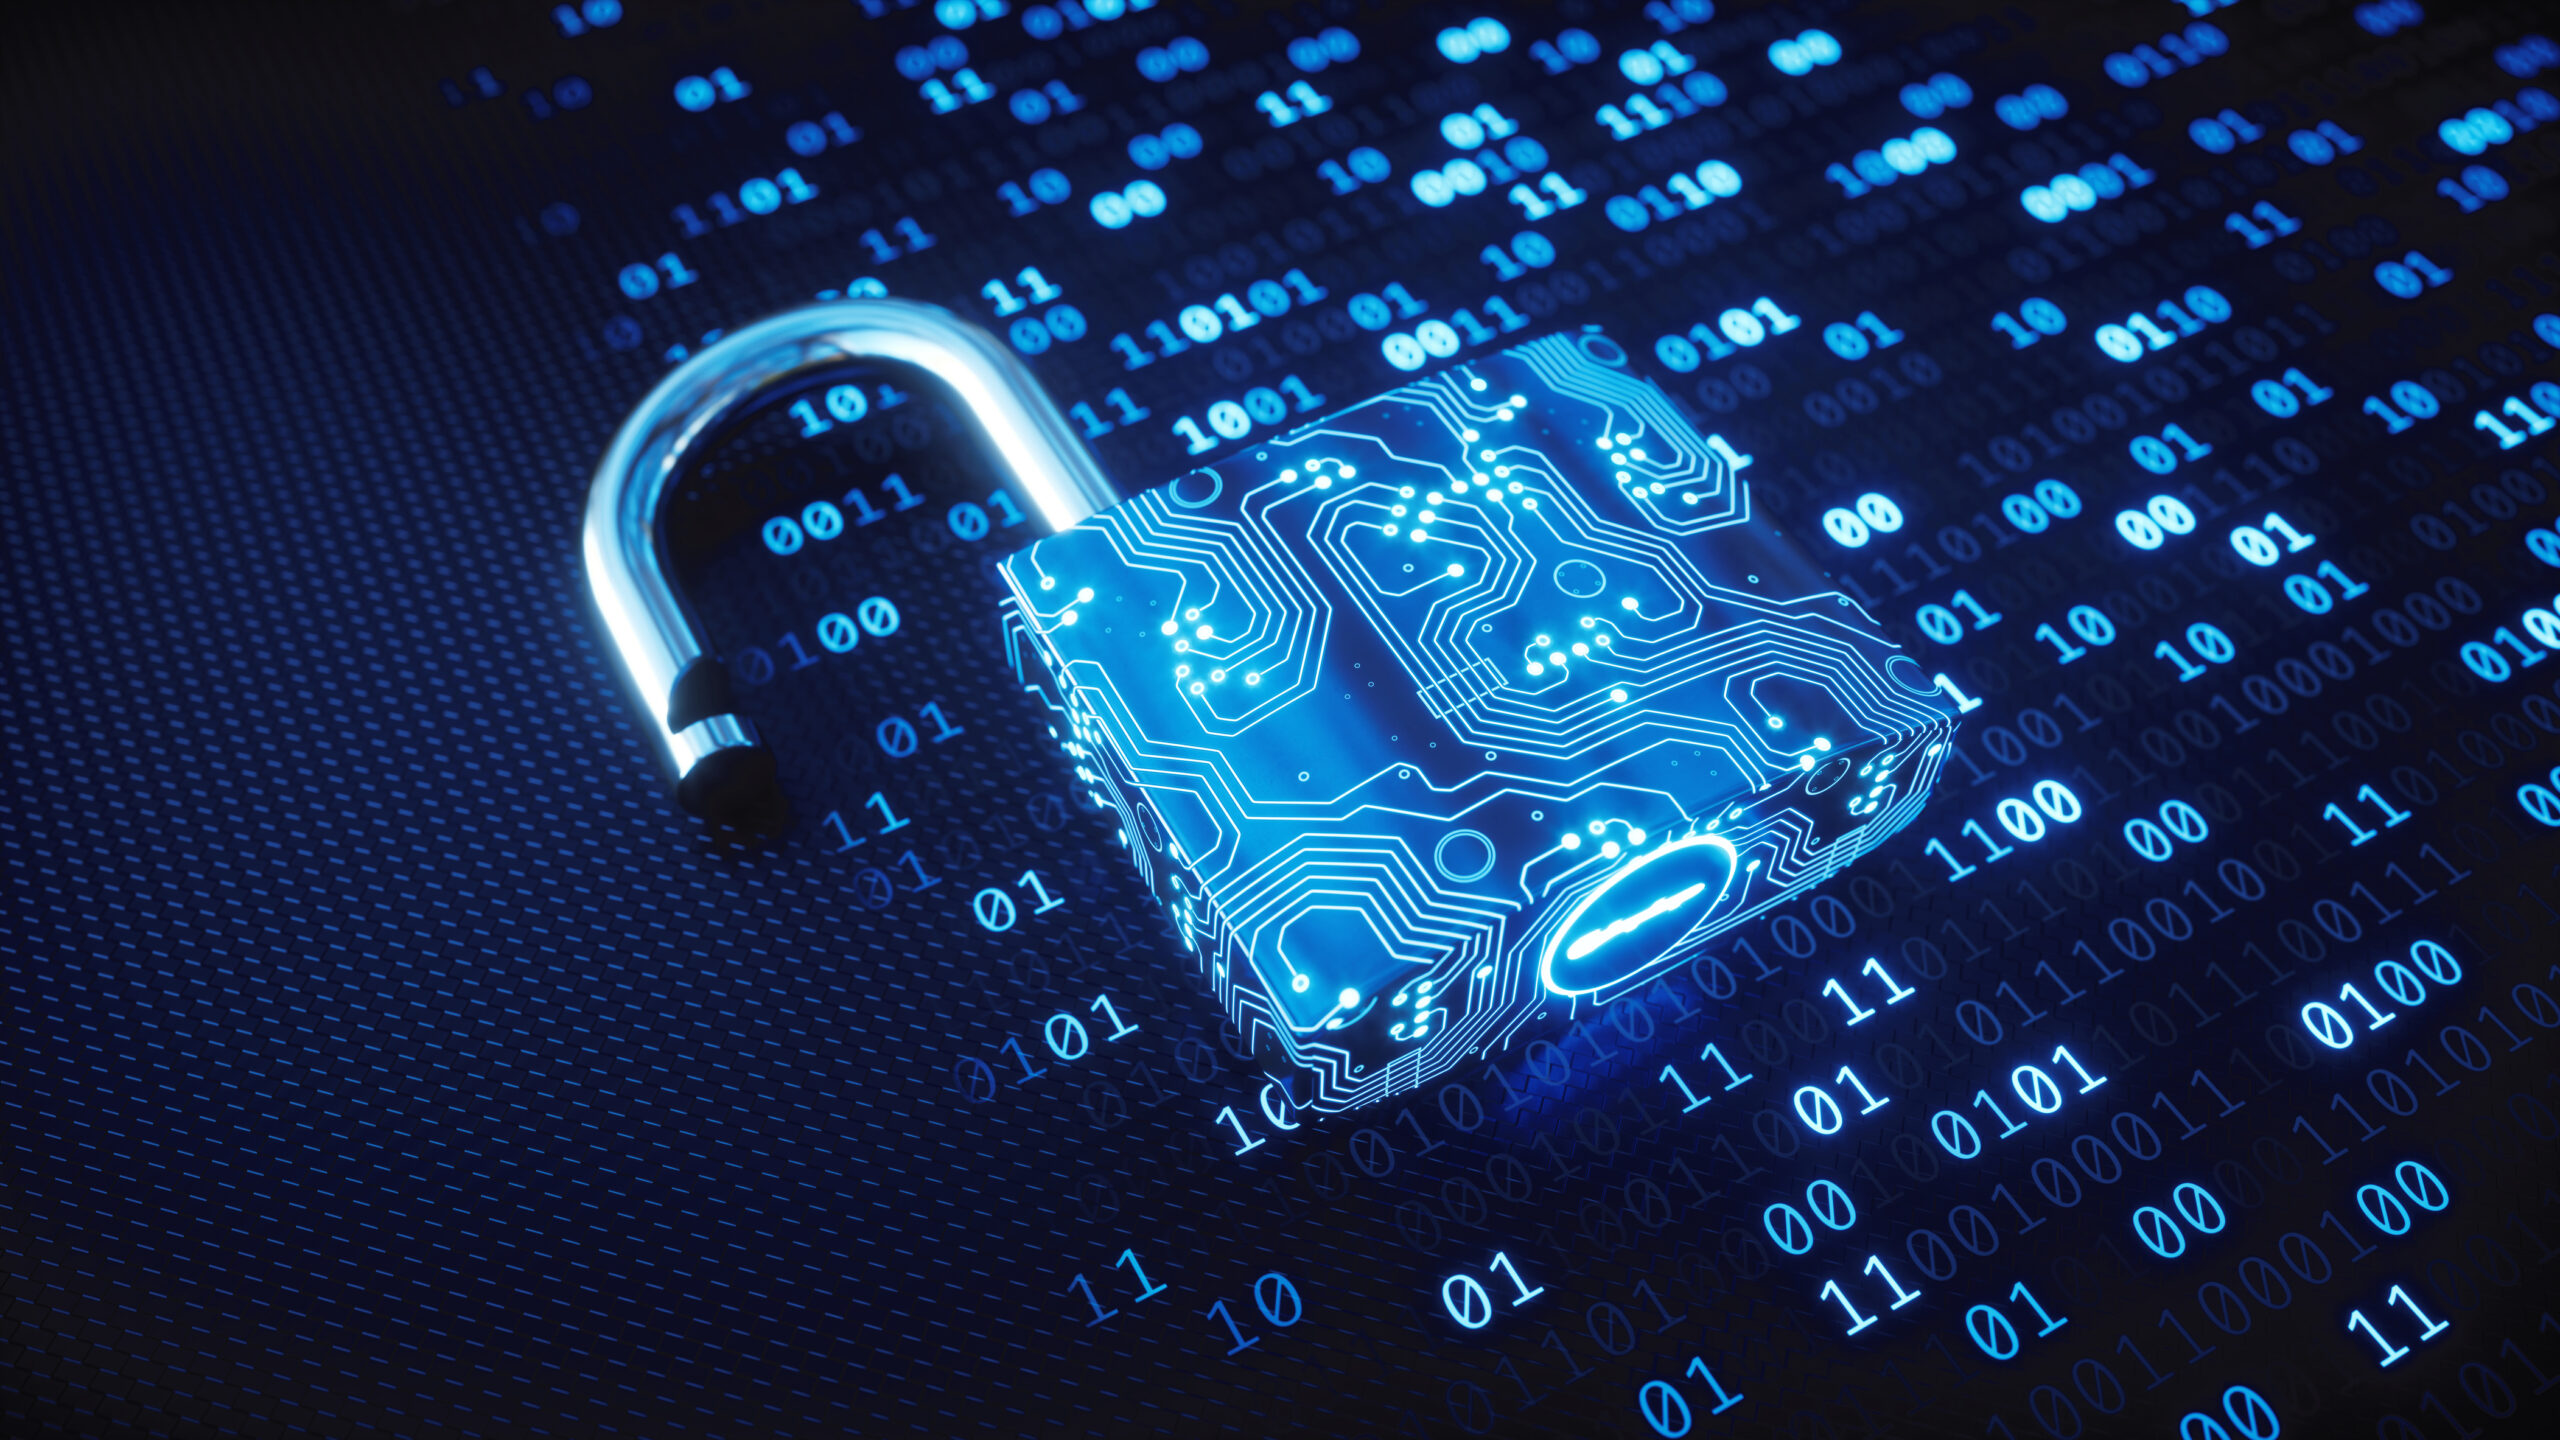 cybersecurity and brand protection best practices